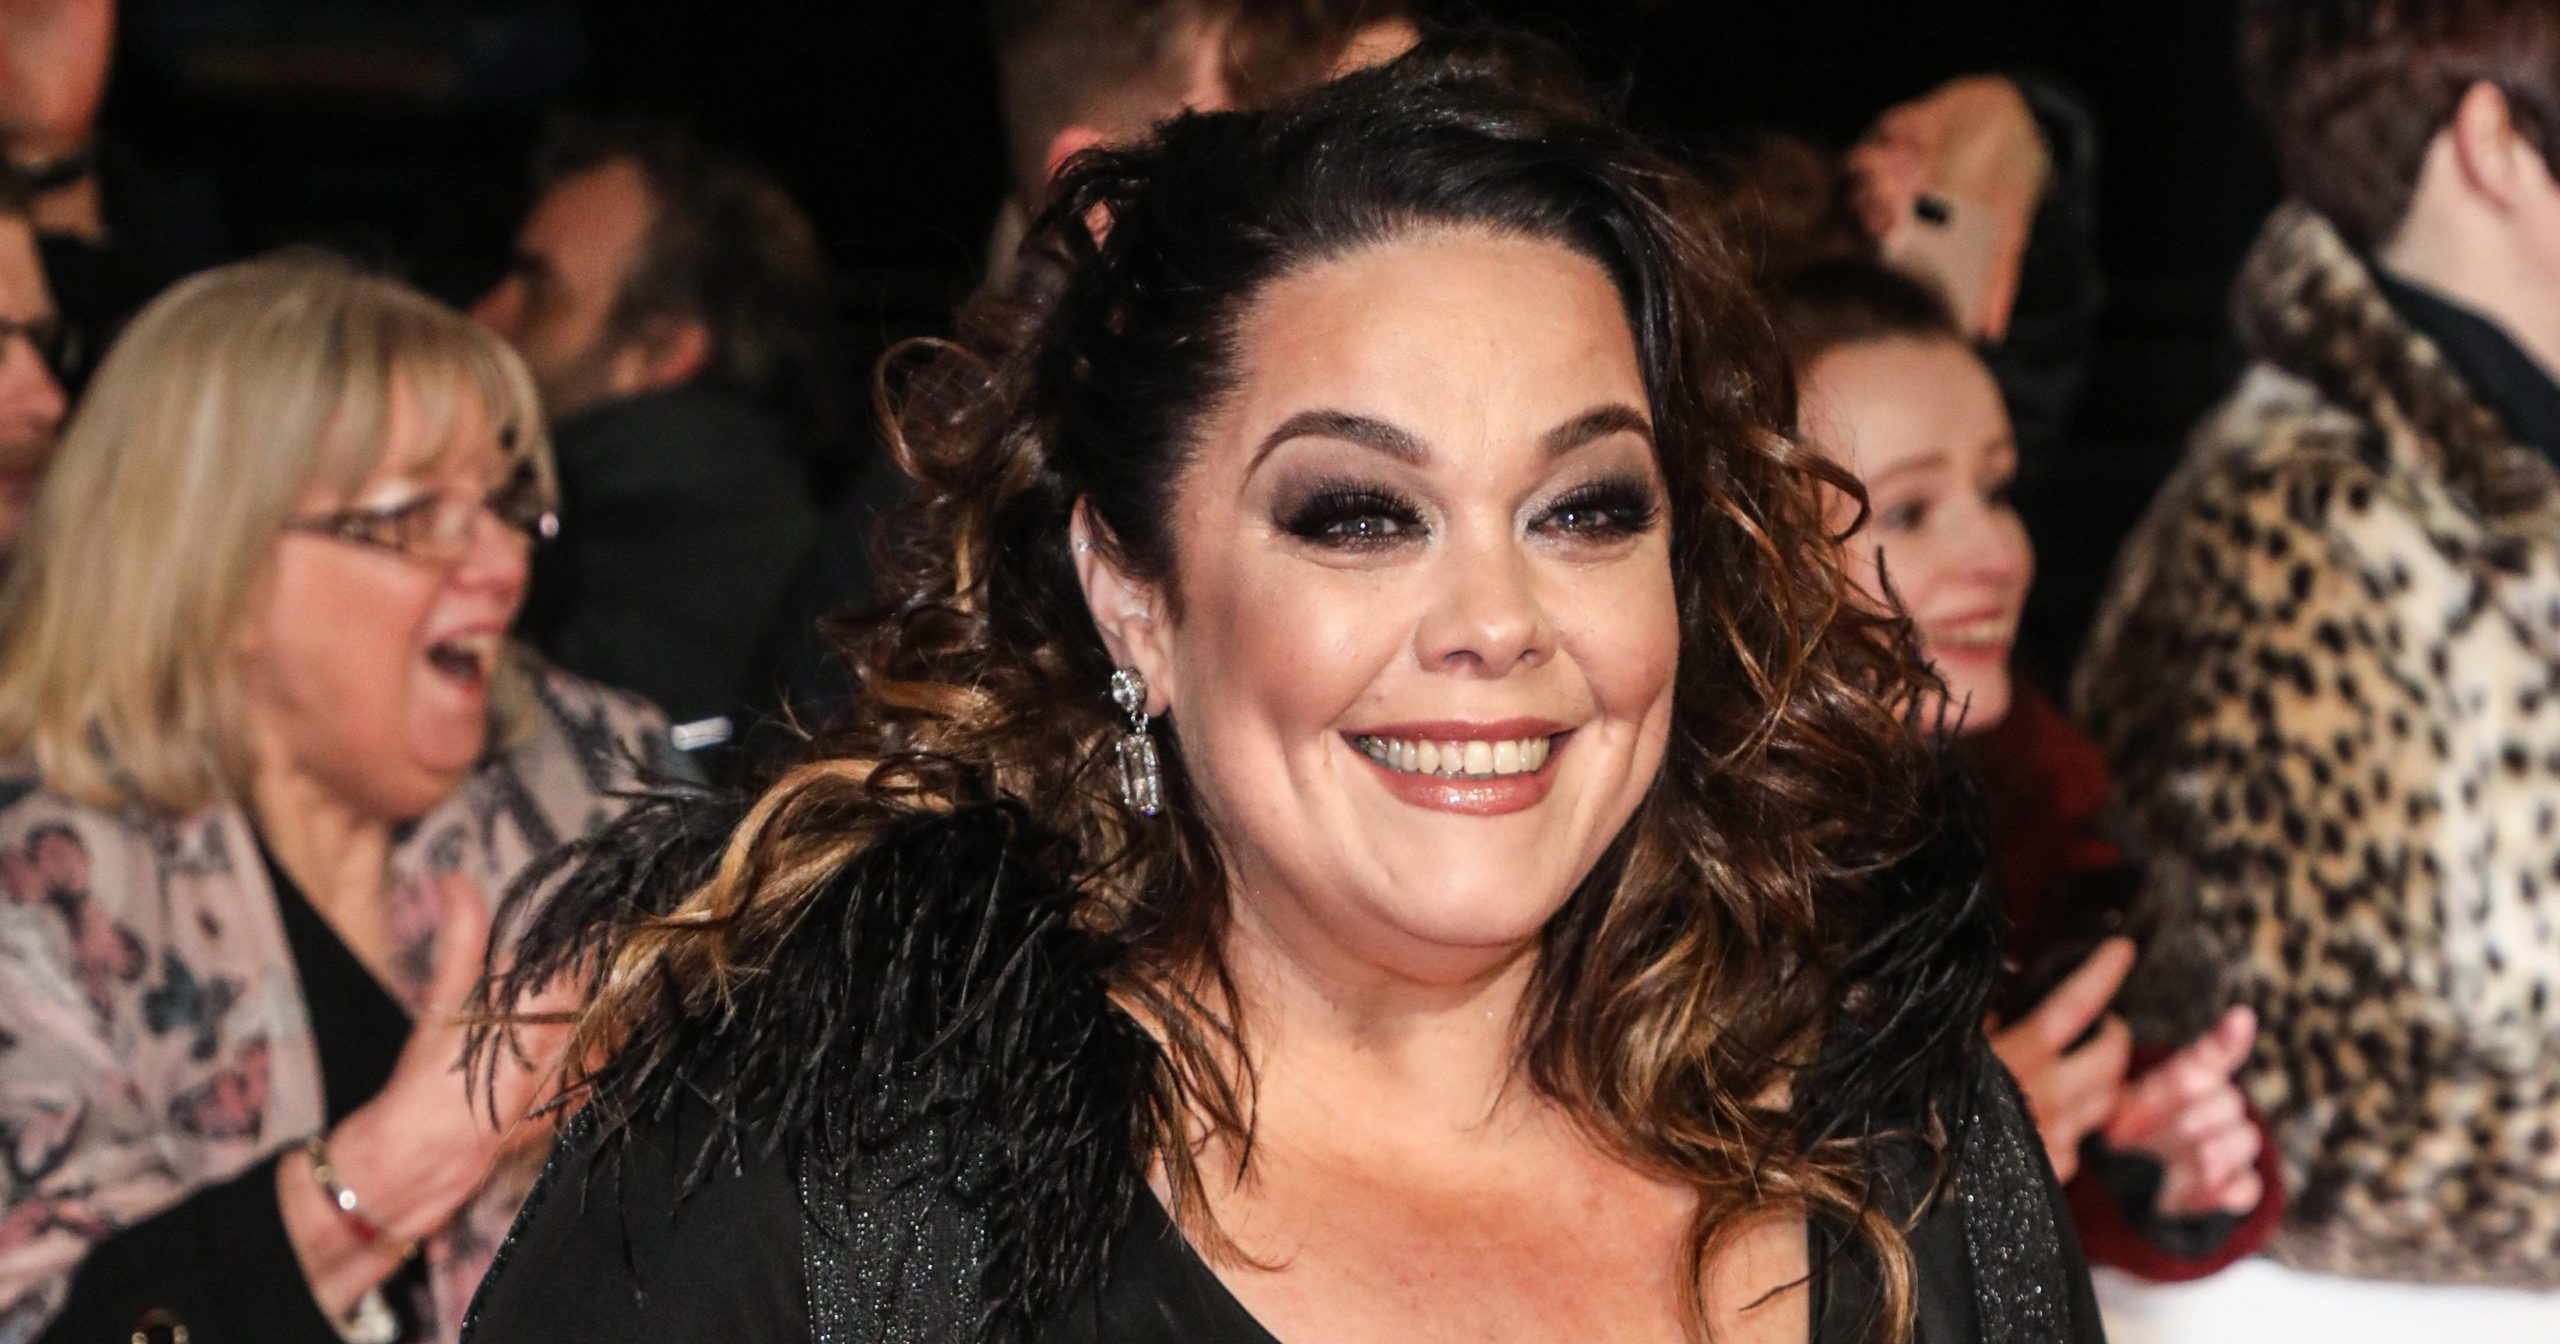 Emmerdale star Lisa Riley gives fans behind the scenes look at how filming works on soap